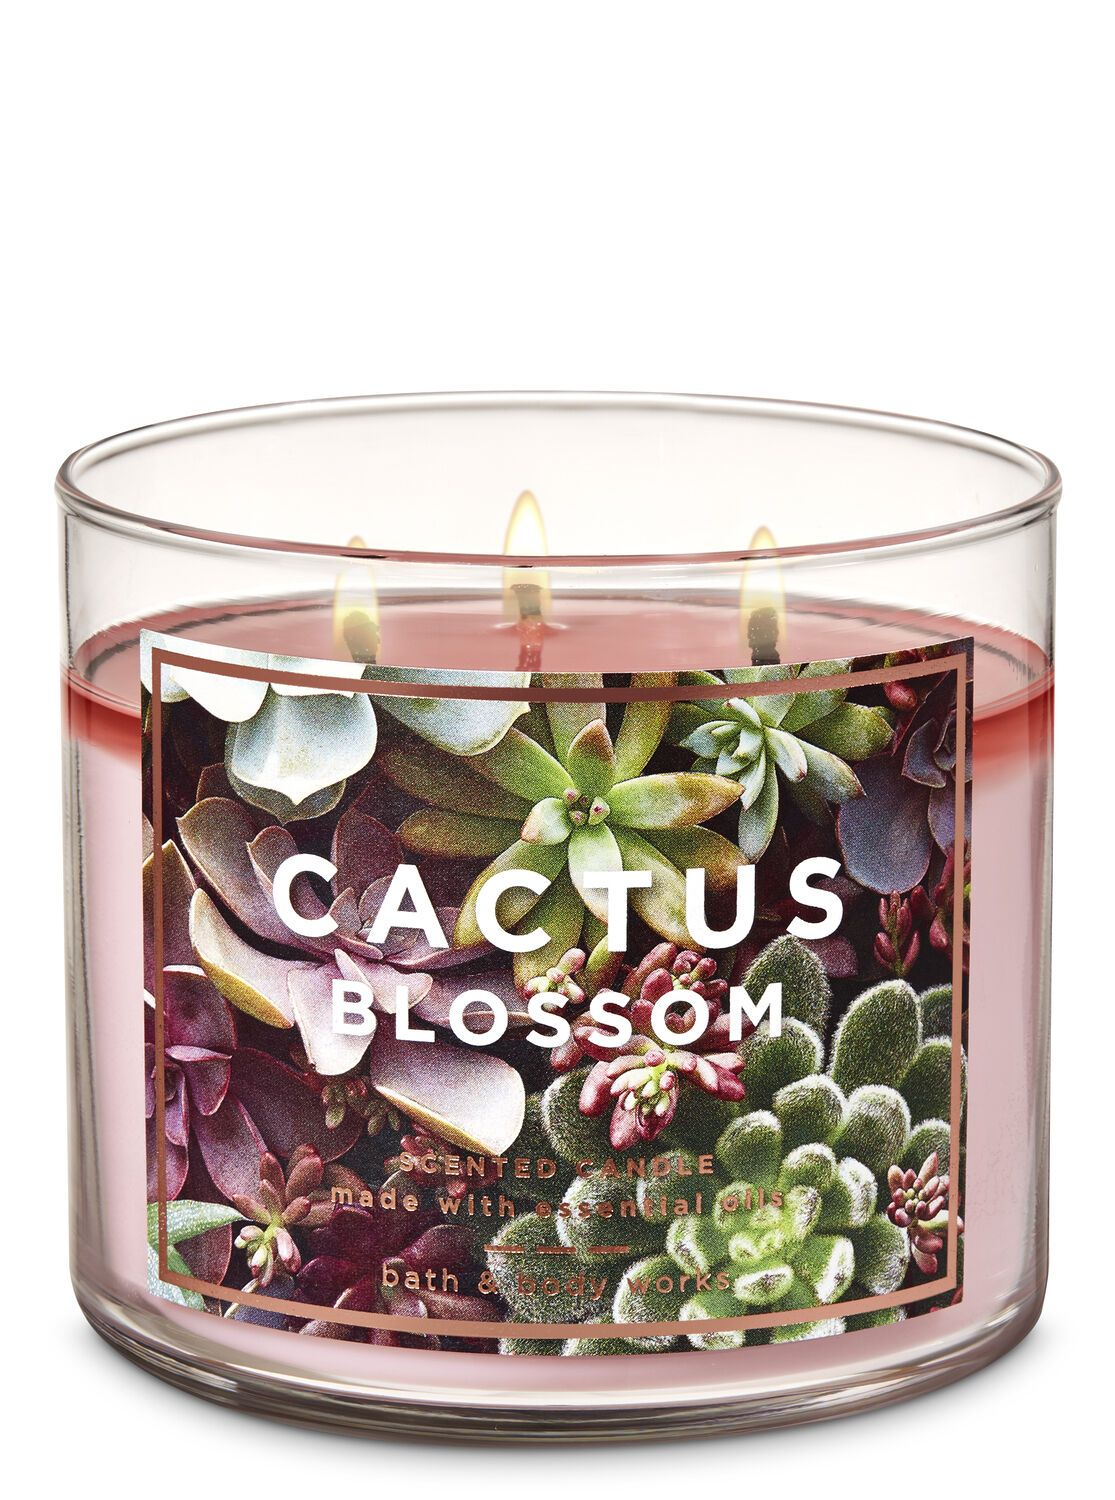 Cactus Blossom 3 Wick Candle By Bath Body Works Bath And Body Works Scented Candles Bath Body Works Candles